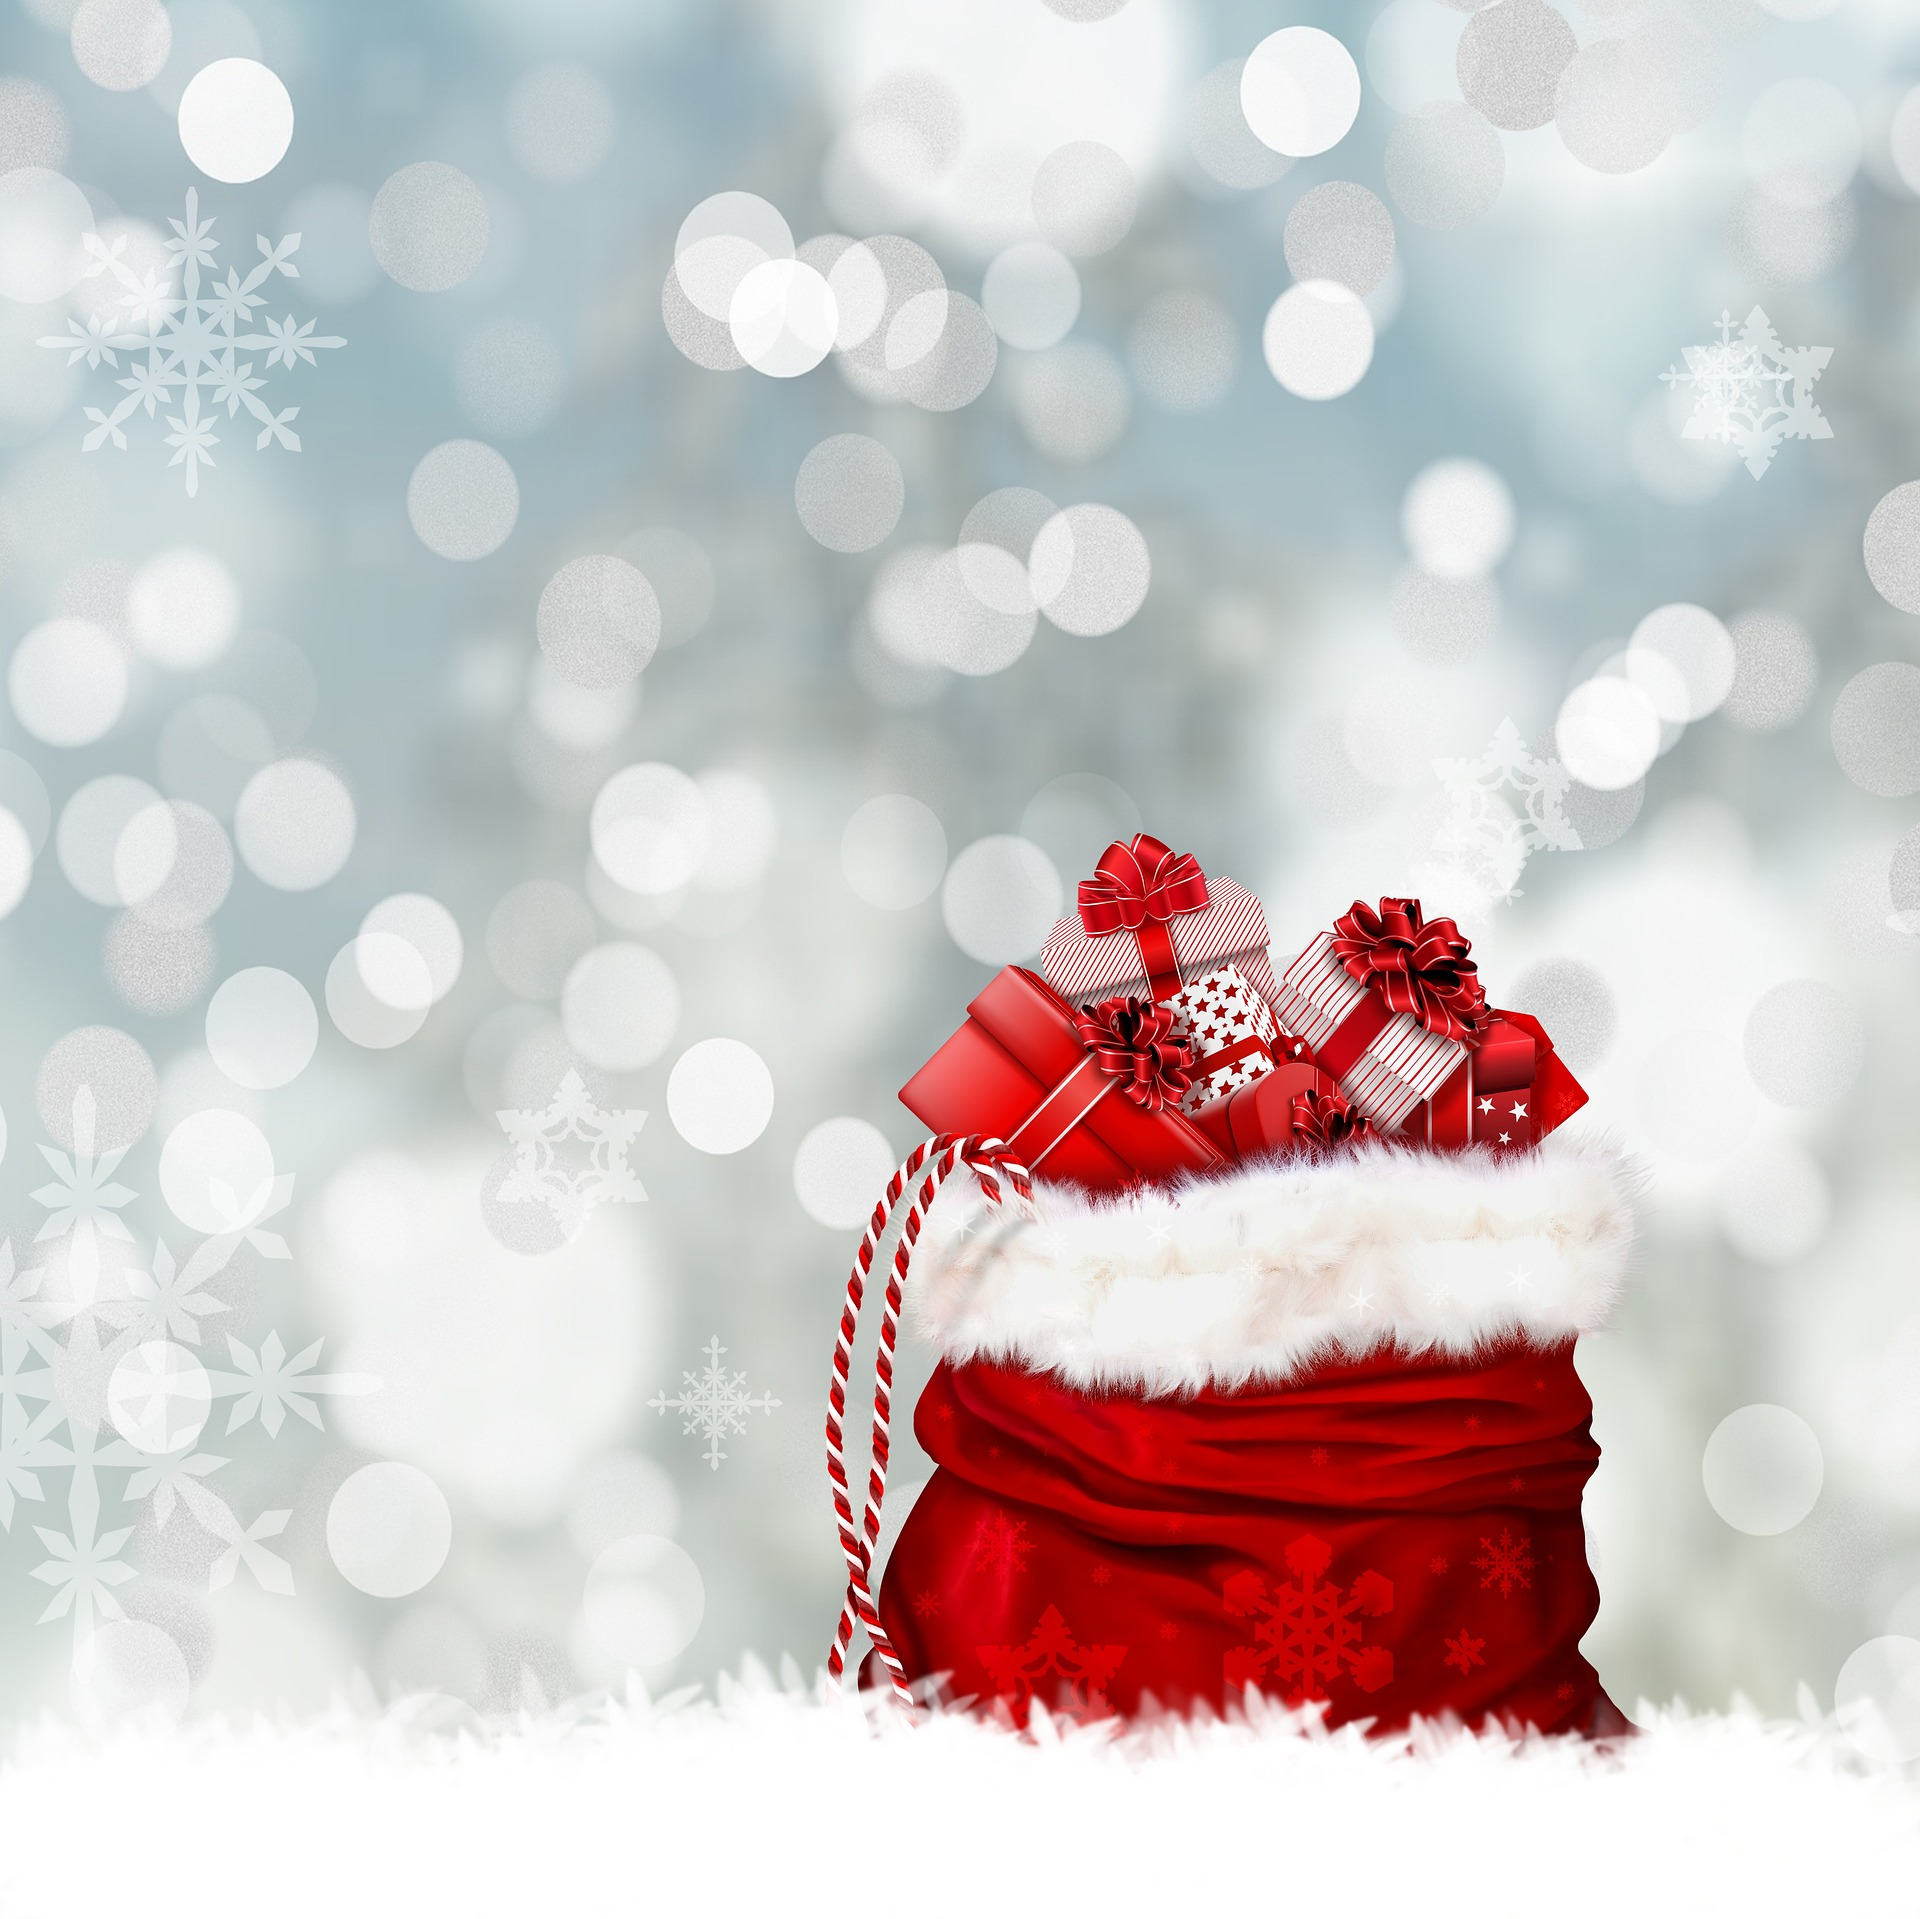 Christmas Greetings For Facebook│New Christmas Messages | Todaytip.net